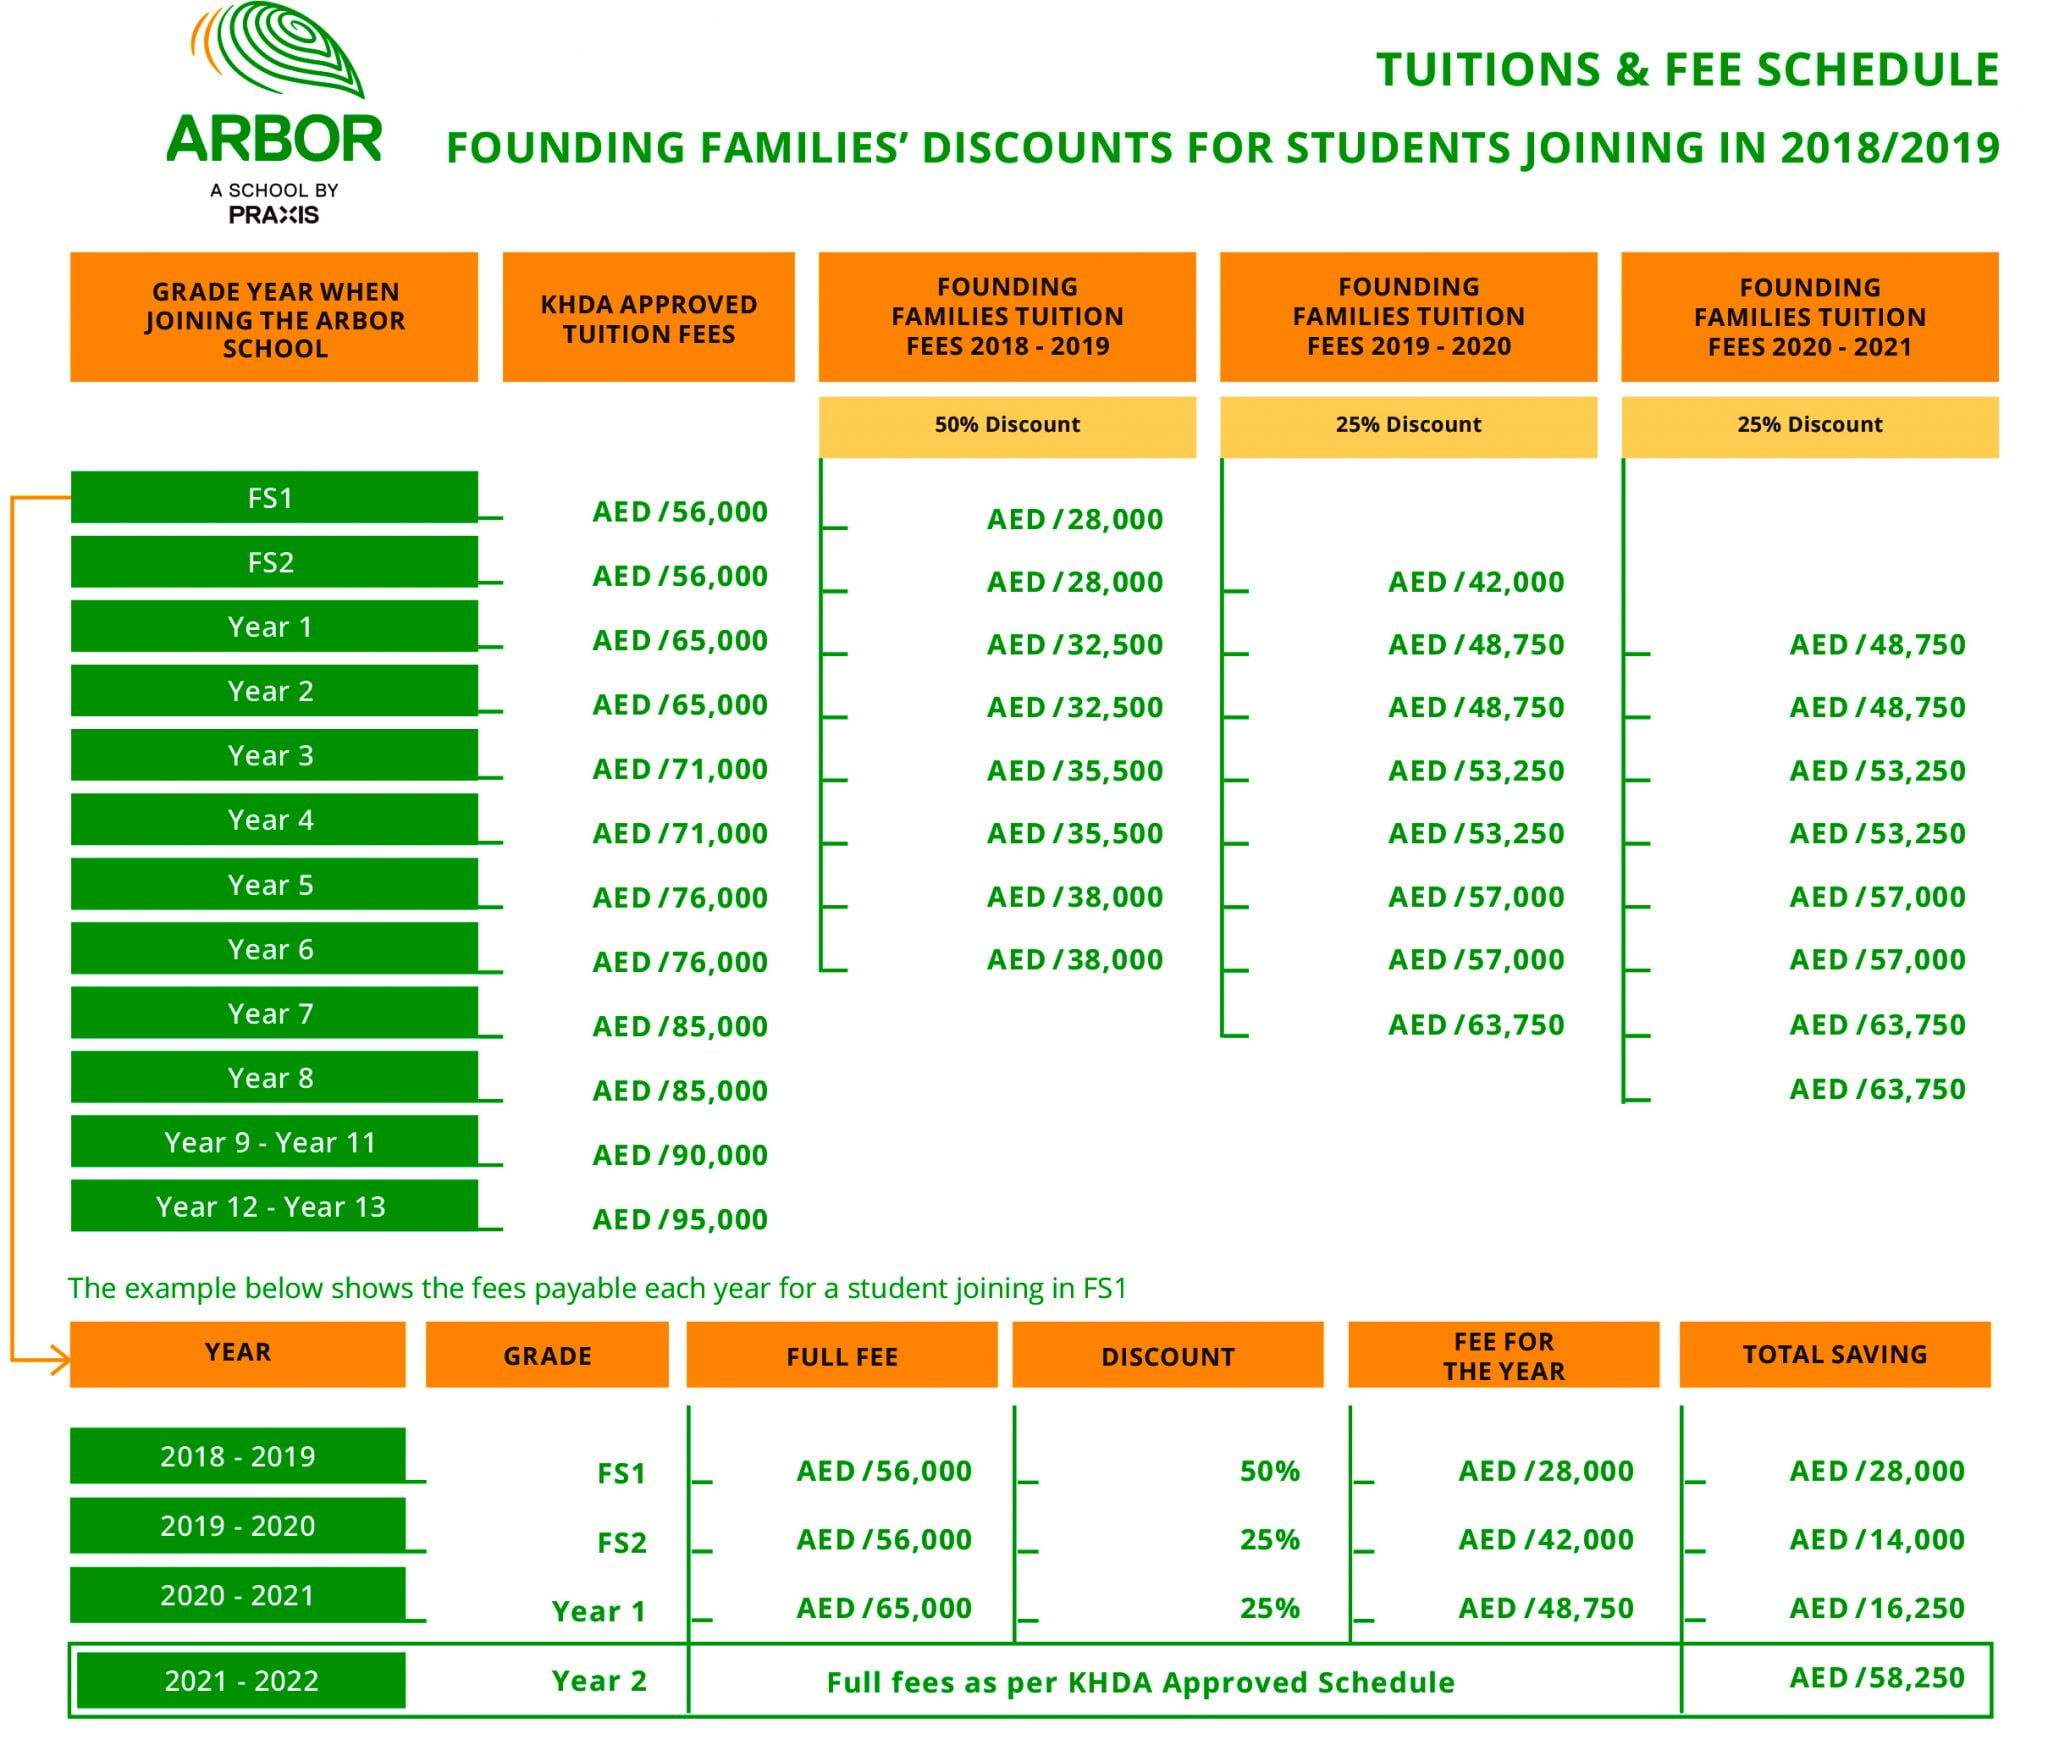 Image showing the special Founding Fees being offered to the first parents to join the new Arbor School in Dubai